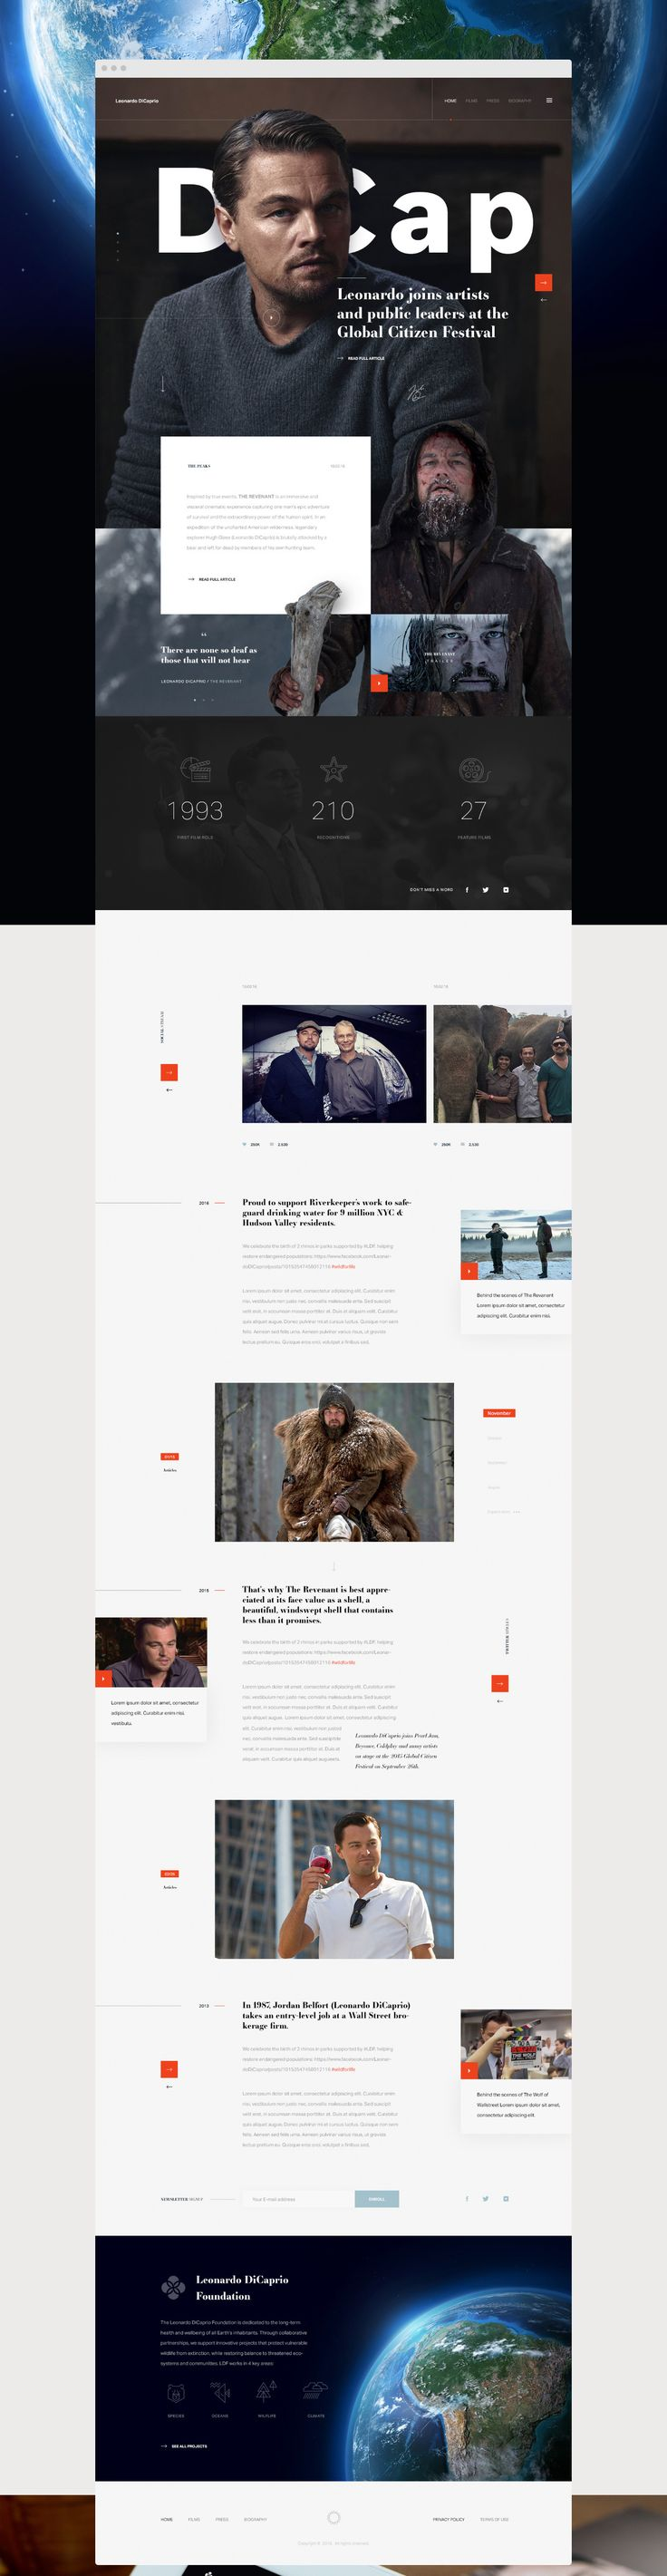 Leonardo DiCaprio Foundation on Behance